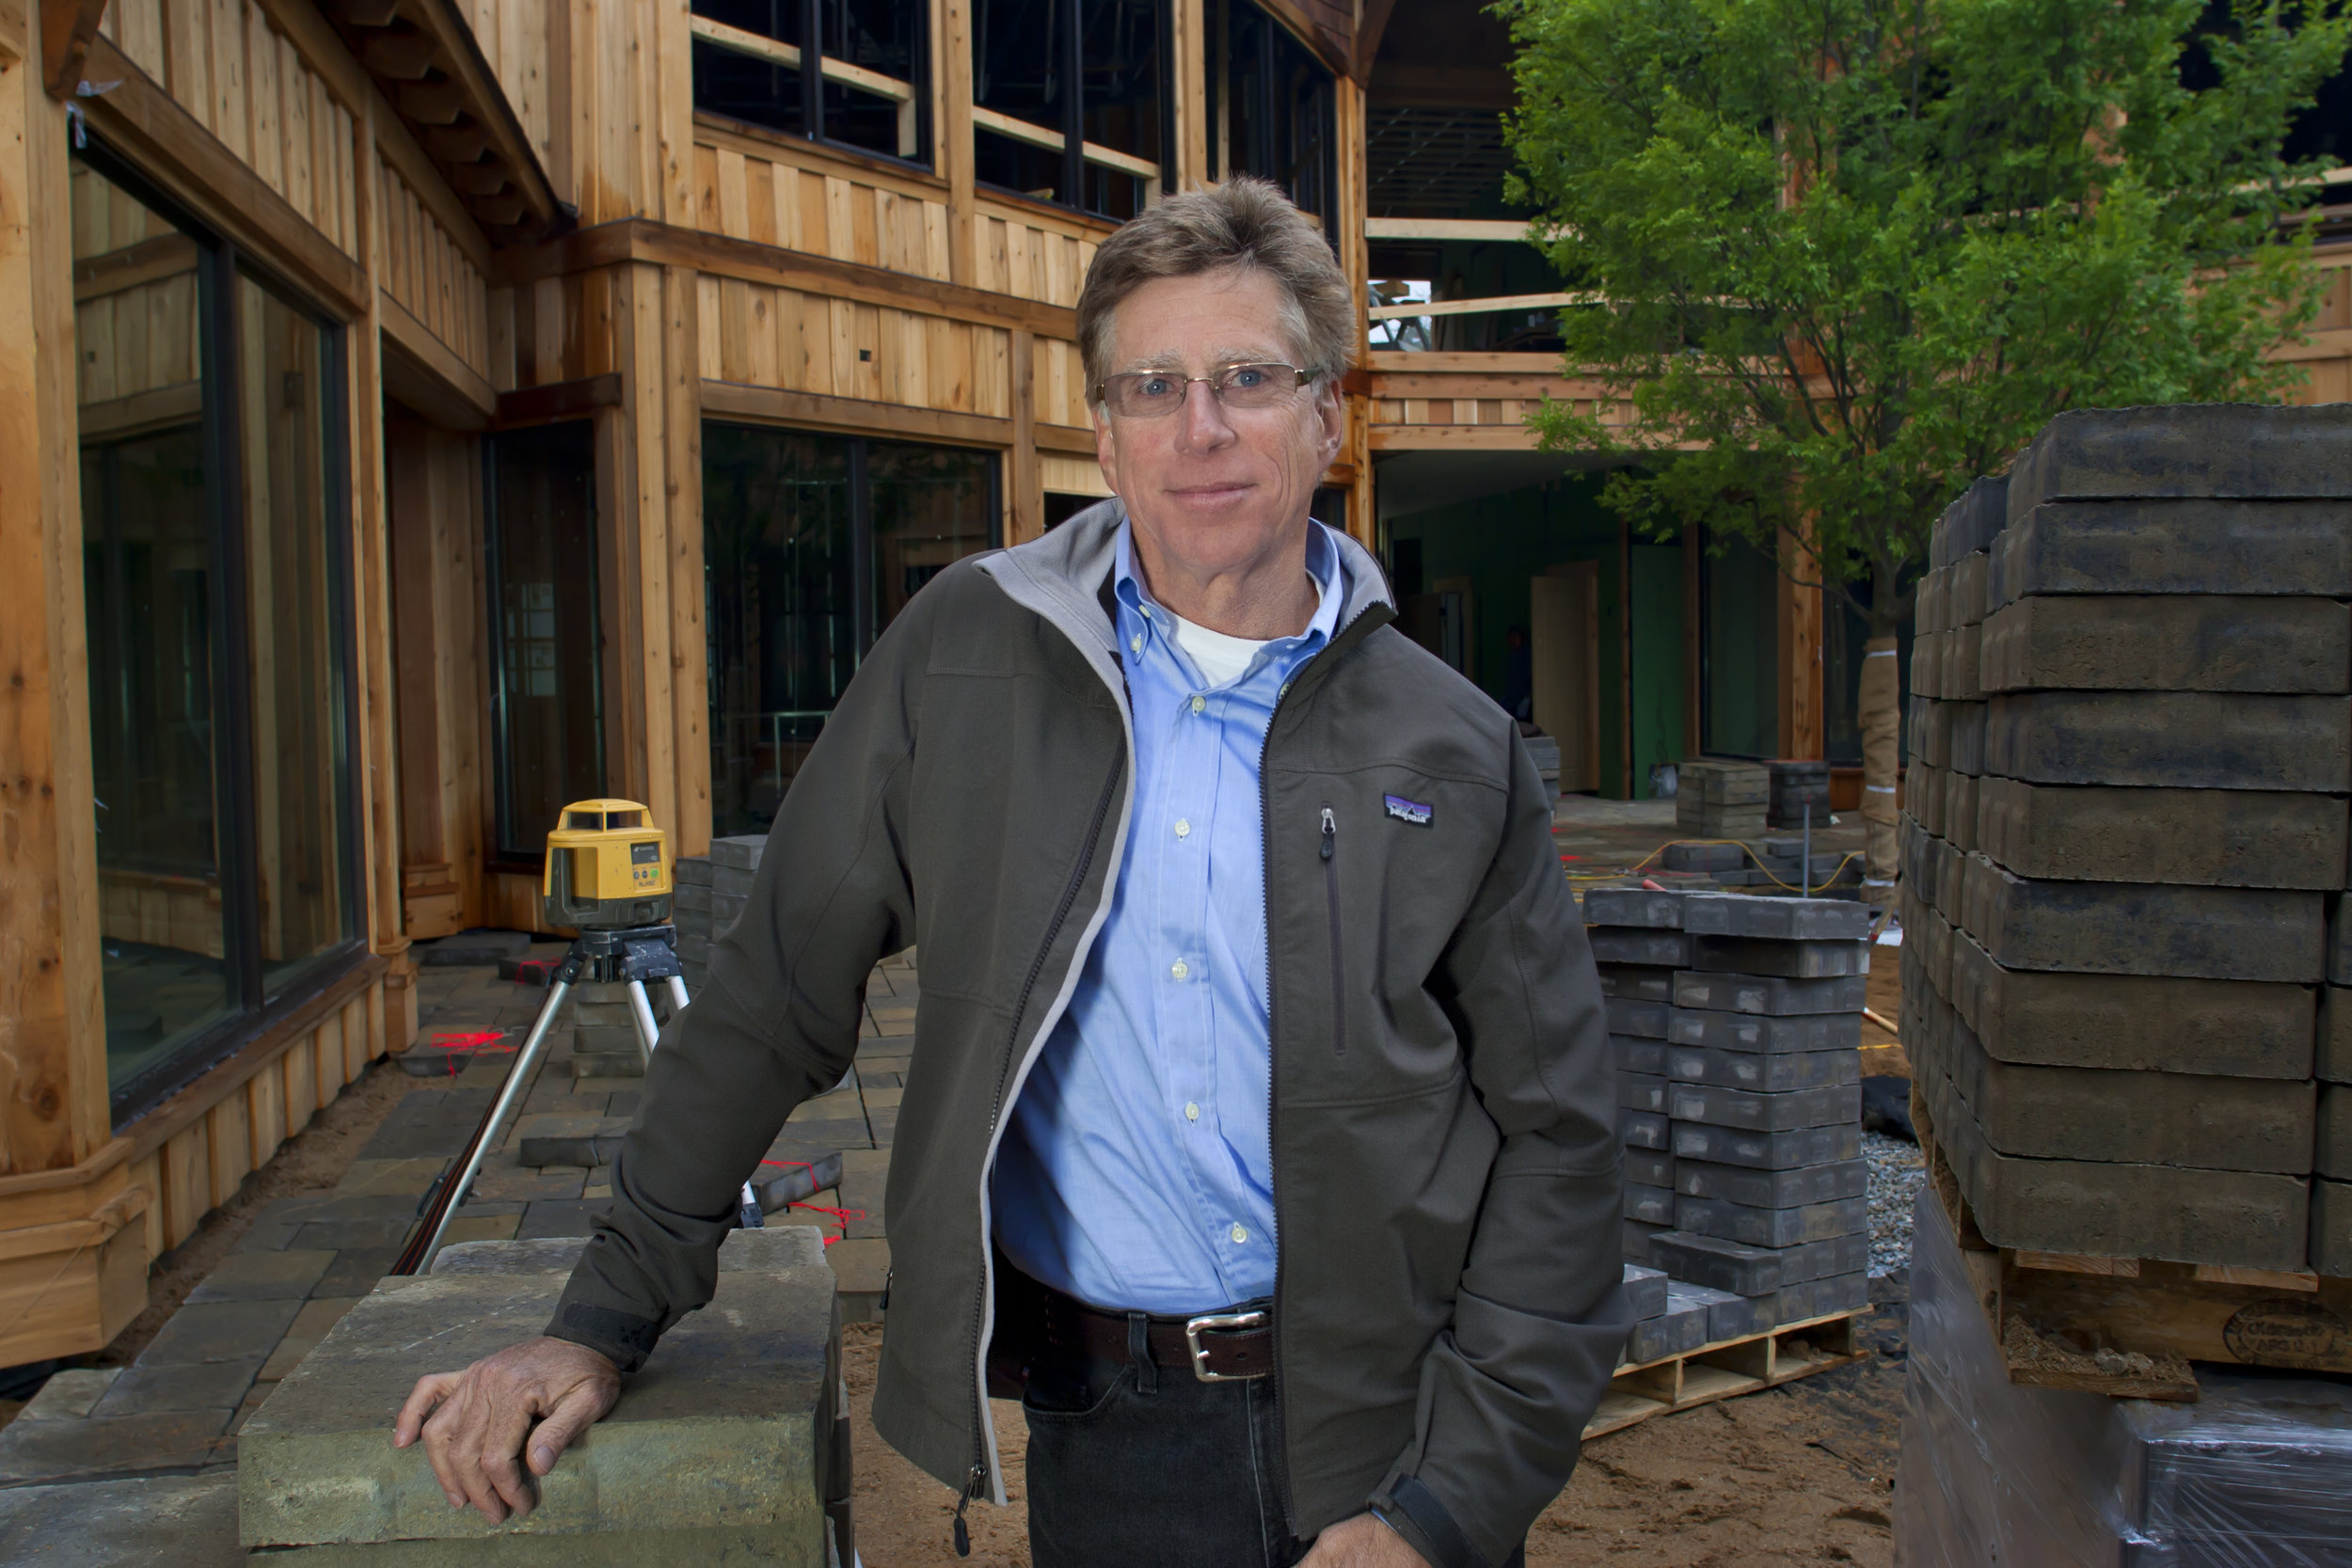 John Lupoli at Town Square in Highlands, a project which was granted the Design of Merit award by the Governor and the NC Small Town Main Street Program in 2012.